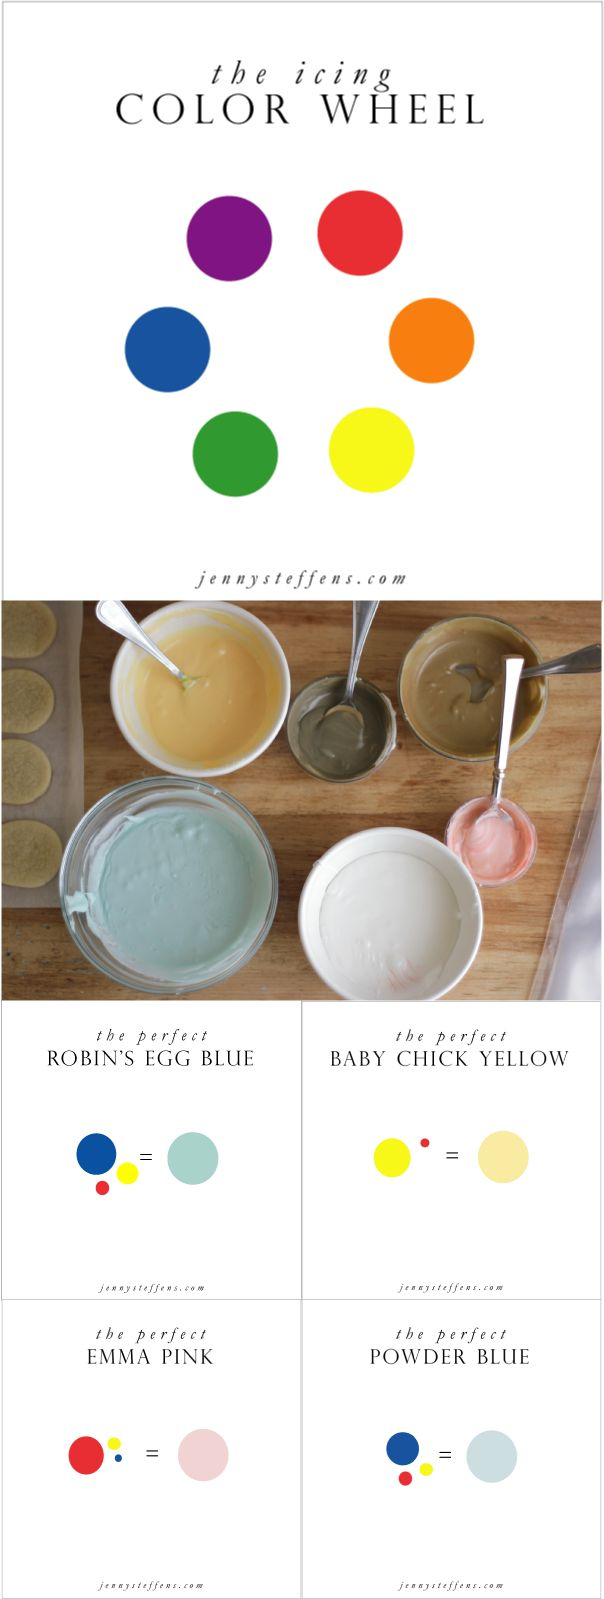 Tips for Mixing Pretty Colors | The Icing Color Wheel